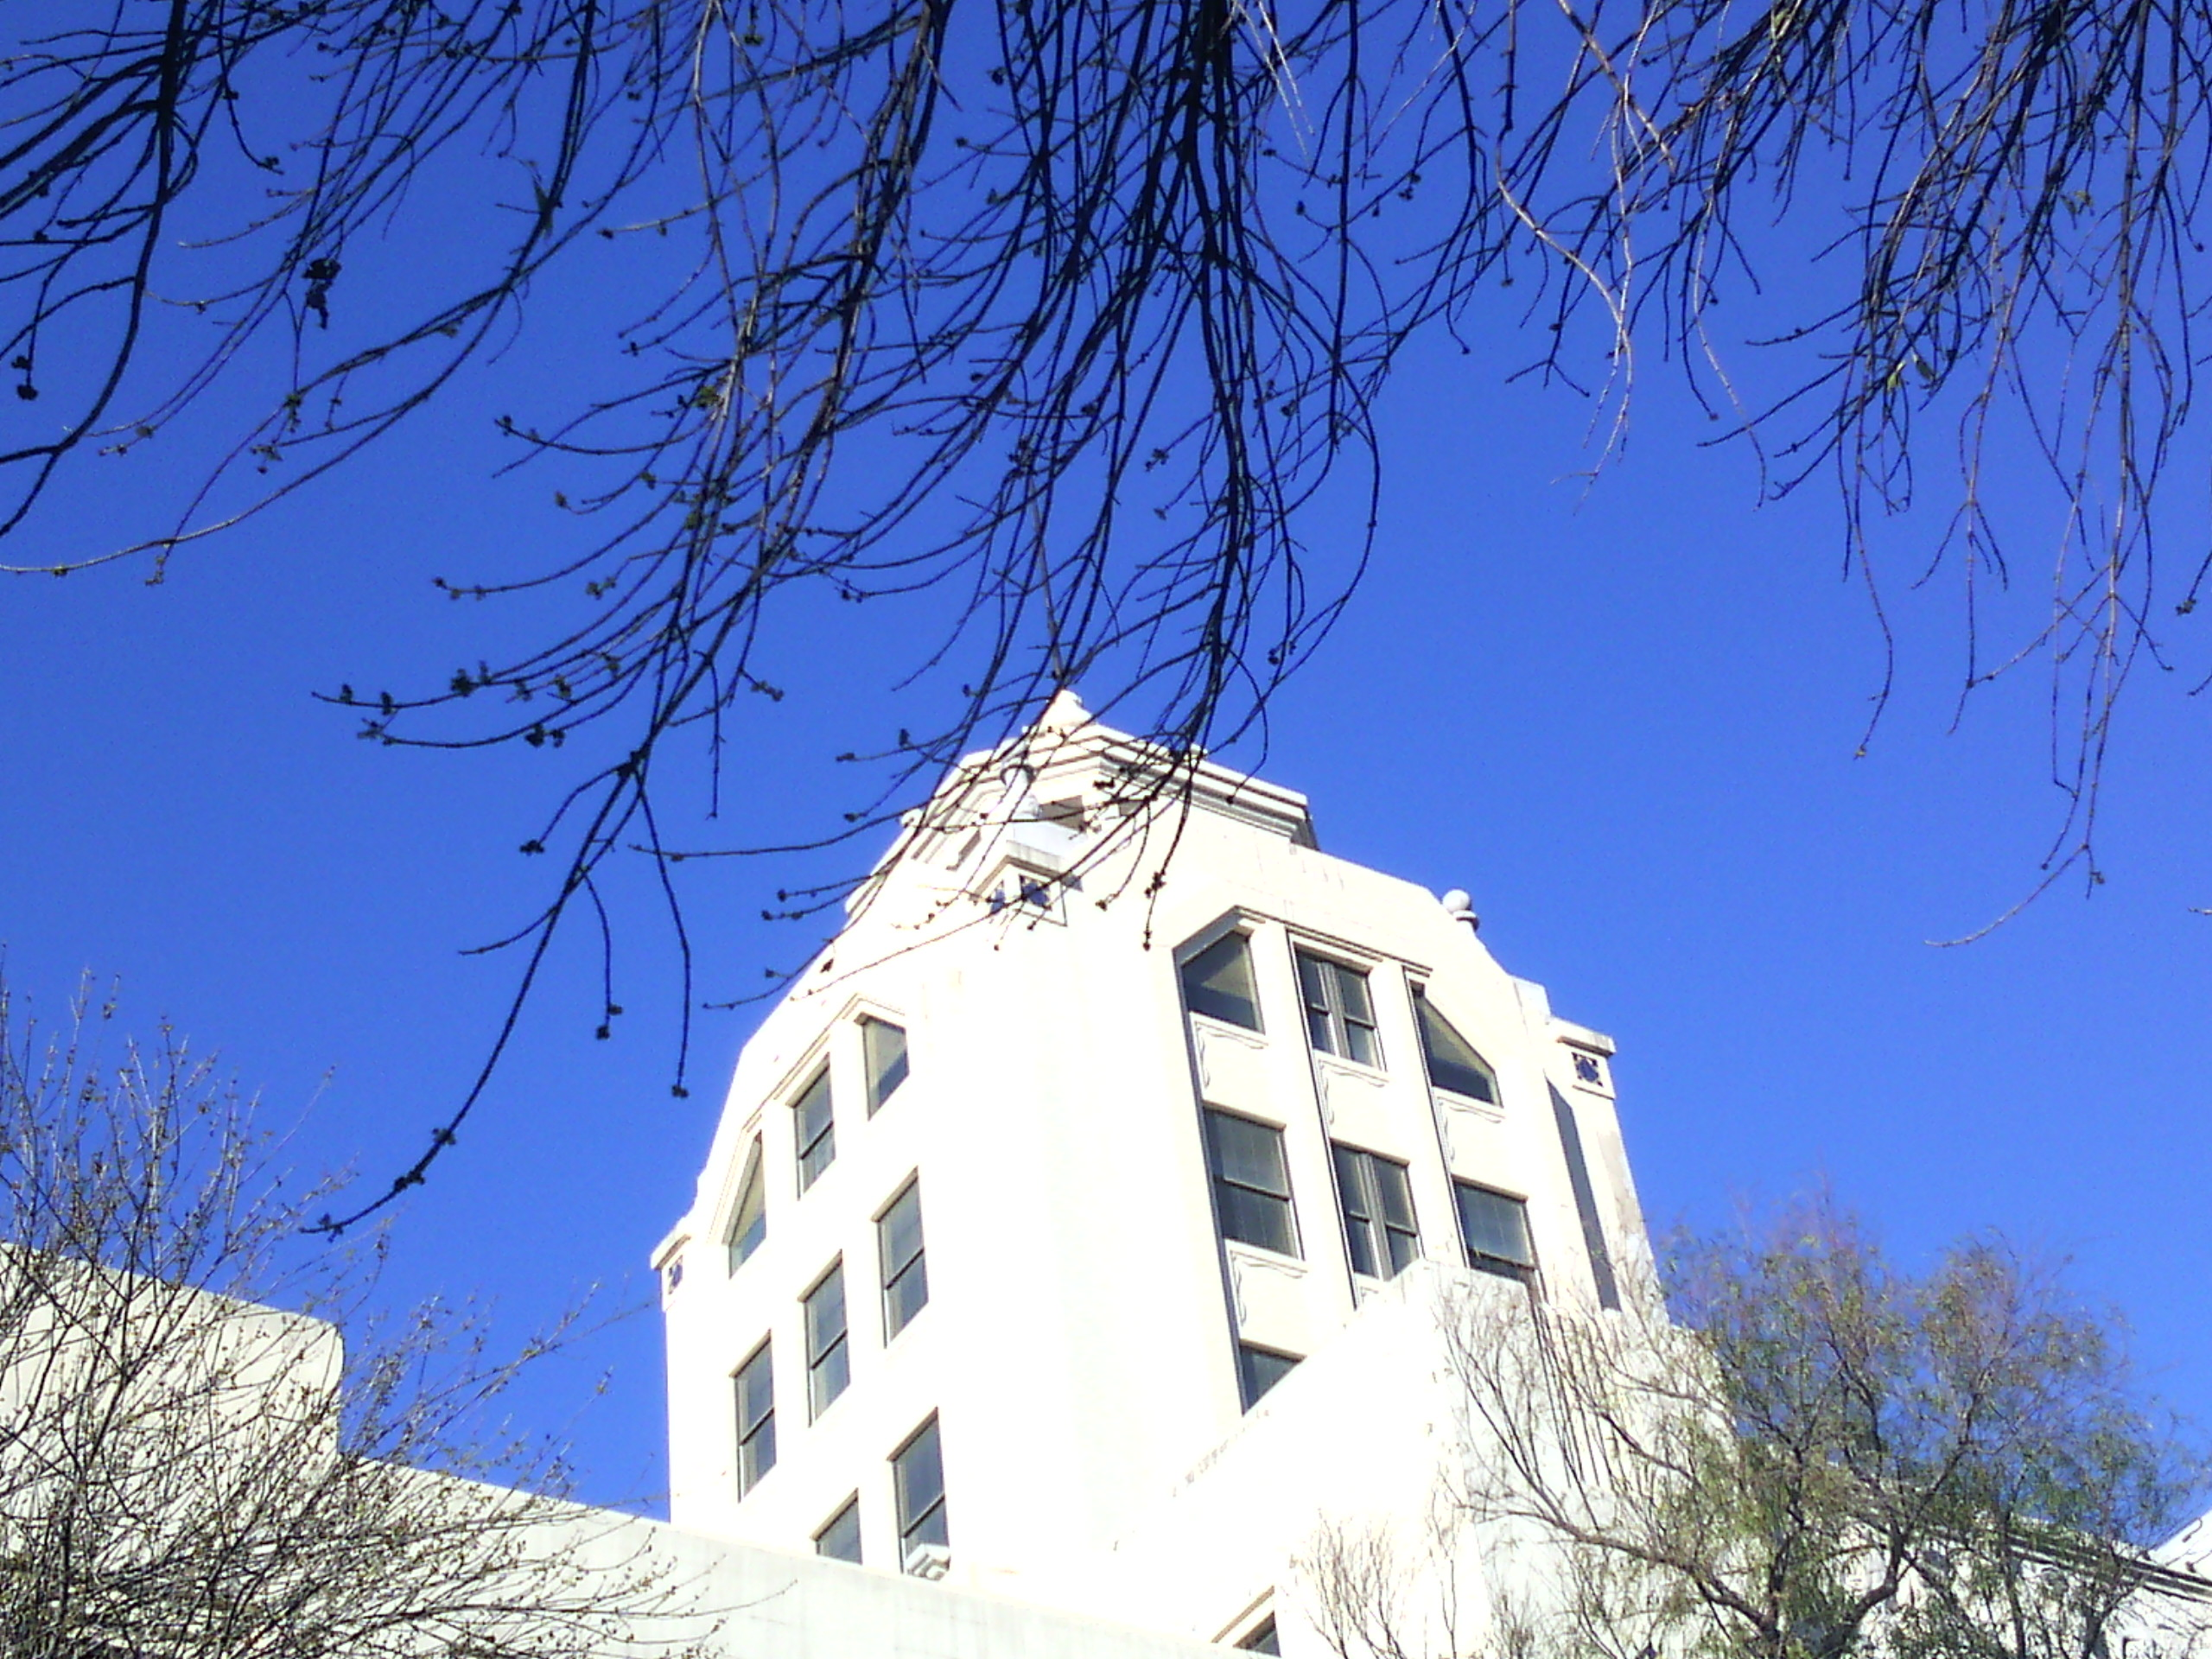 Look at the blue sky over art deco building photo